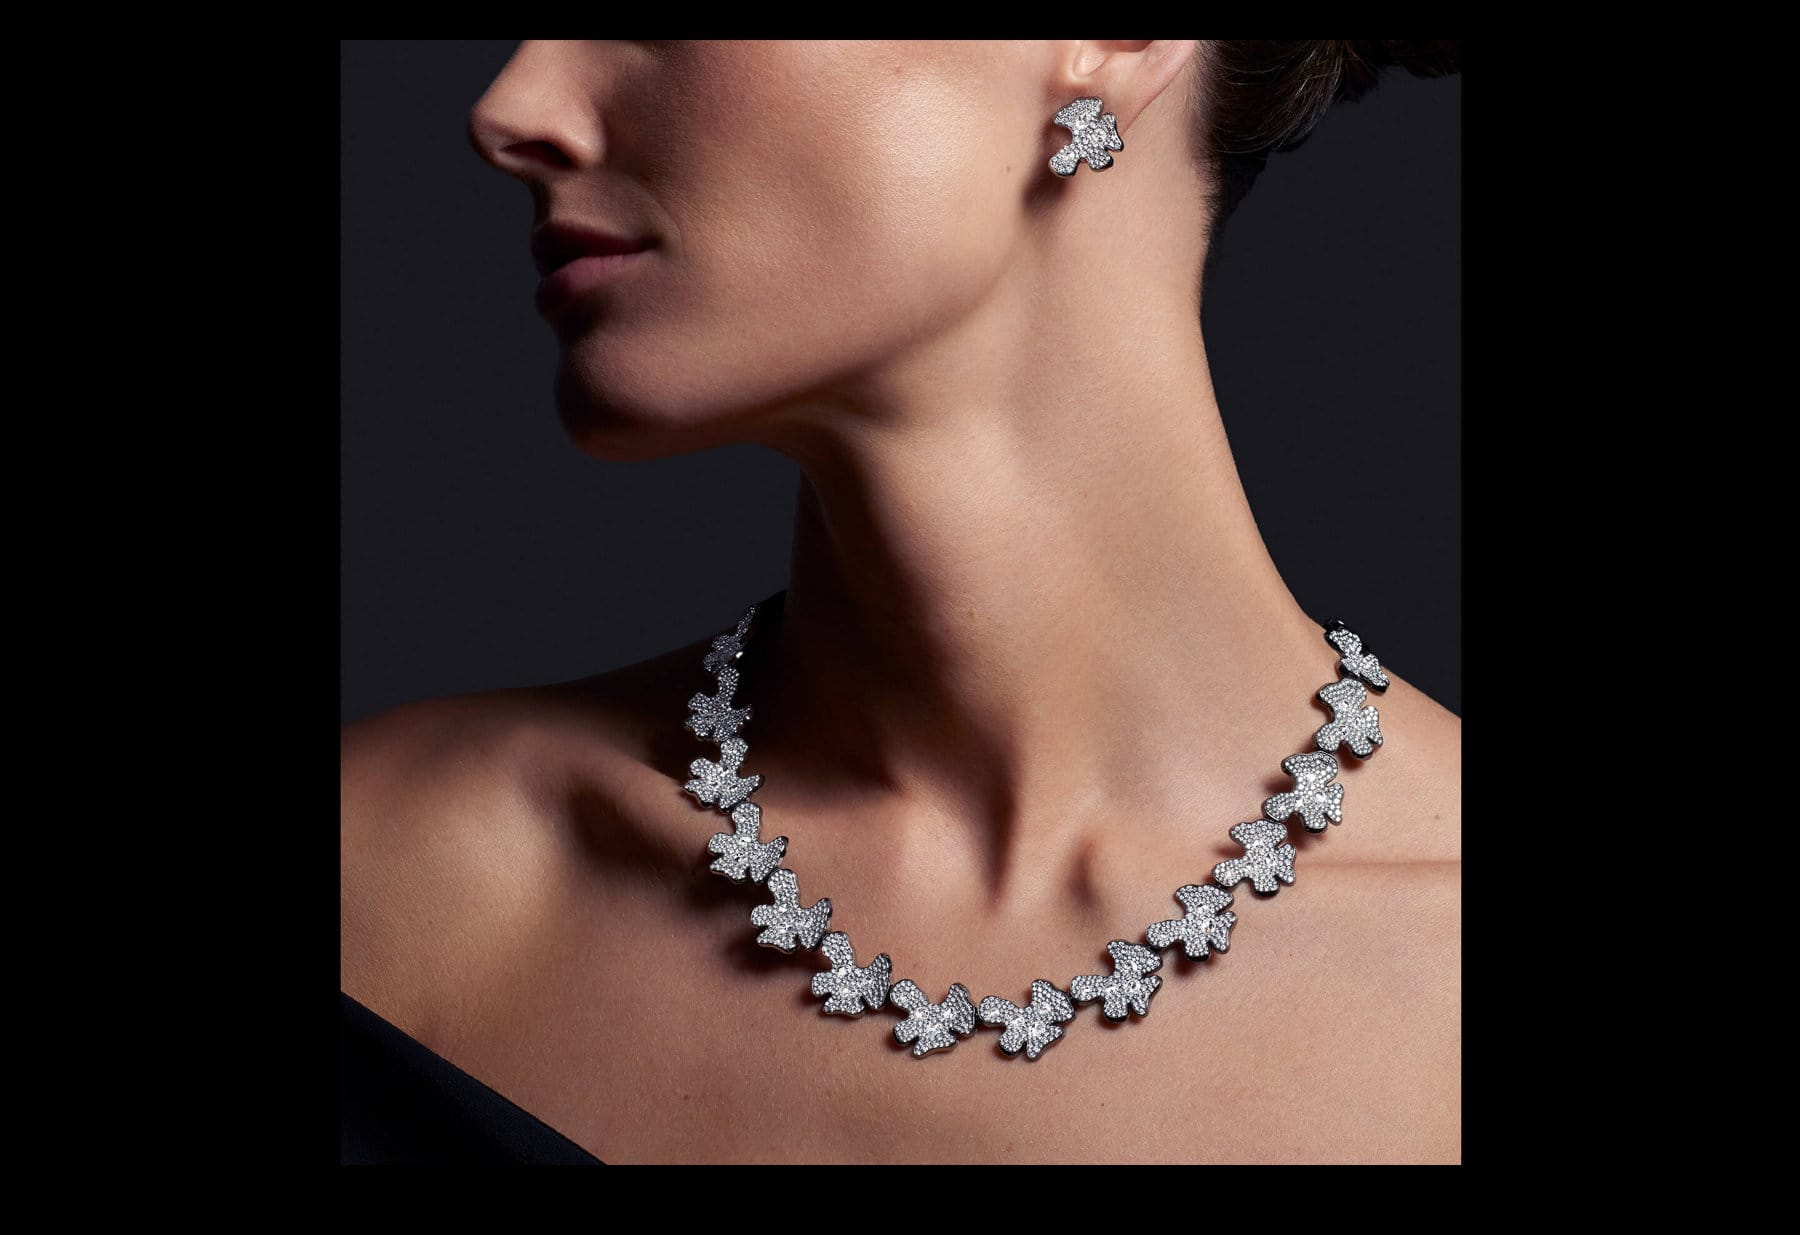 A color photo shows a model wearing a David Yurman Night Petals earring and necklace in front of a black background. The photo is cropped to show her profile from the nose down. The jewelry is crafted from lily-pad-shaped stations of rhodium-plated 18K white gold encrusted with brilliant- and rose-cut white diamonds.